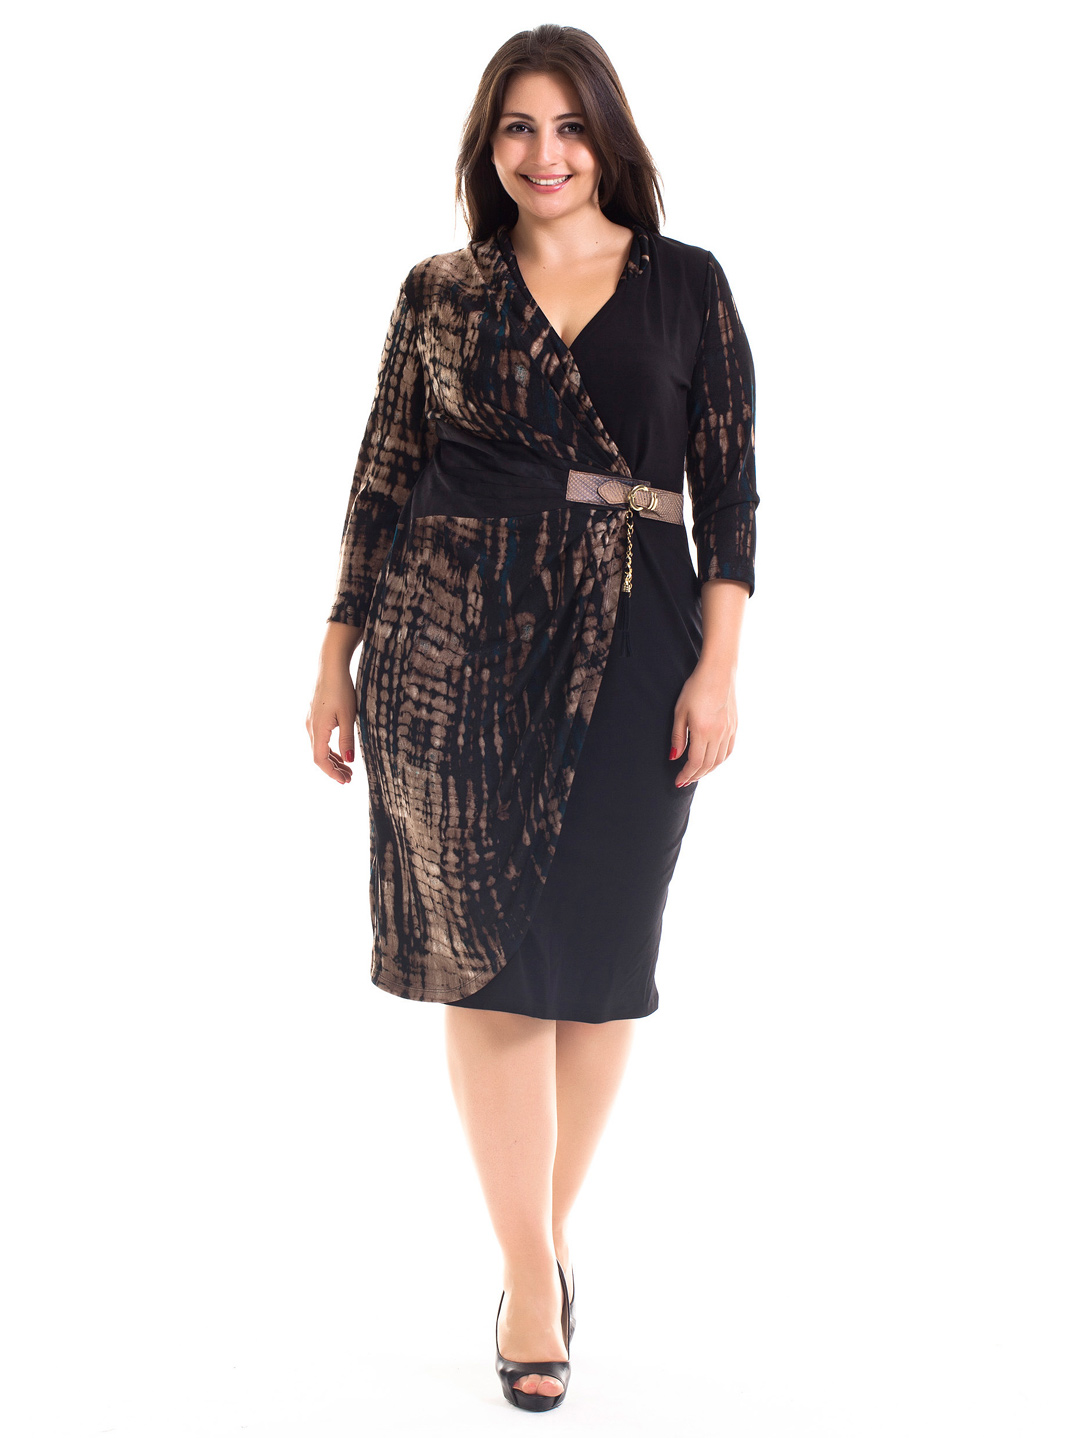 Designer Plus Size Clothing In Sizes 12 32 Igigi